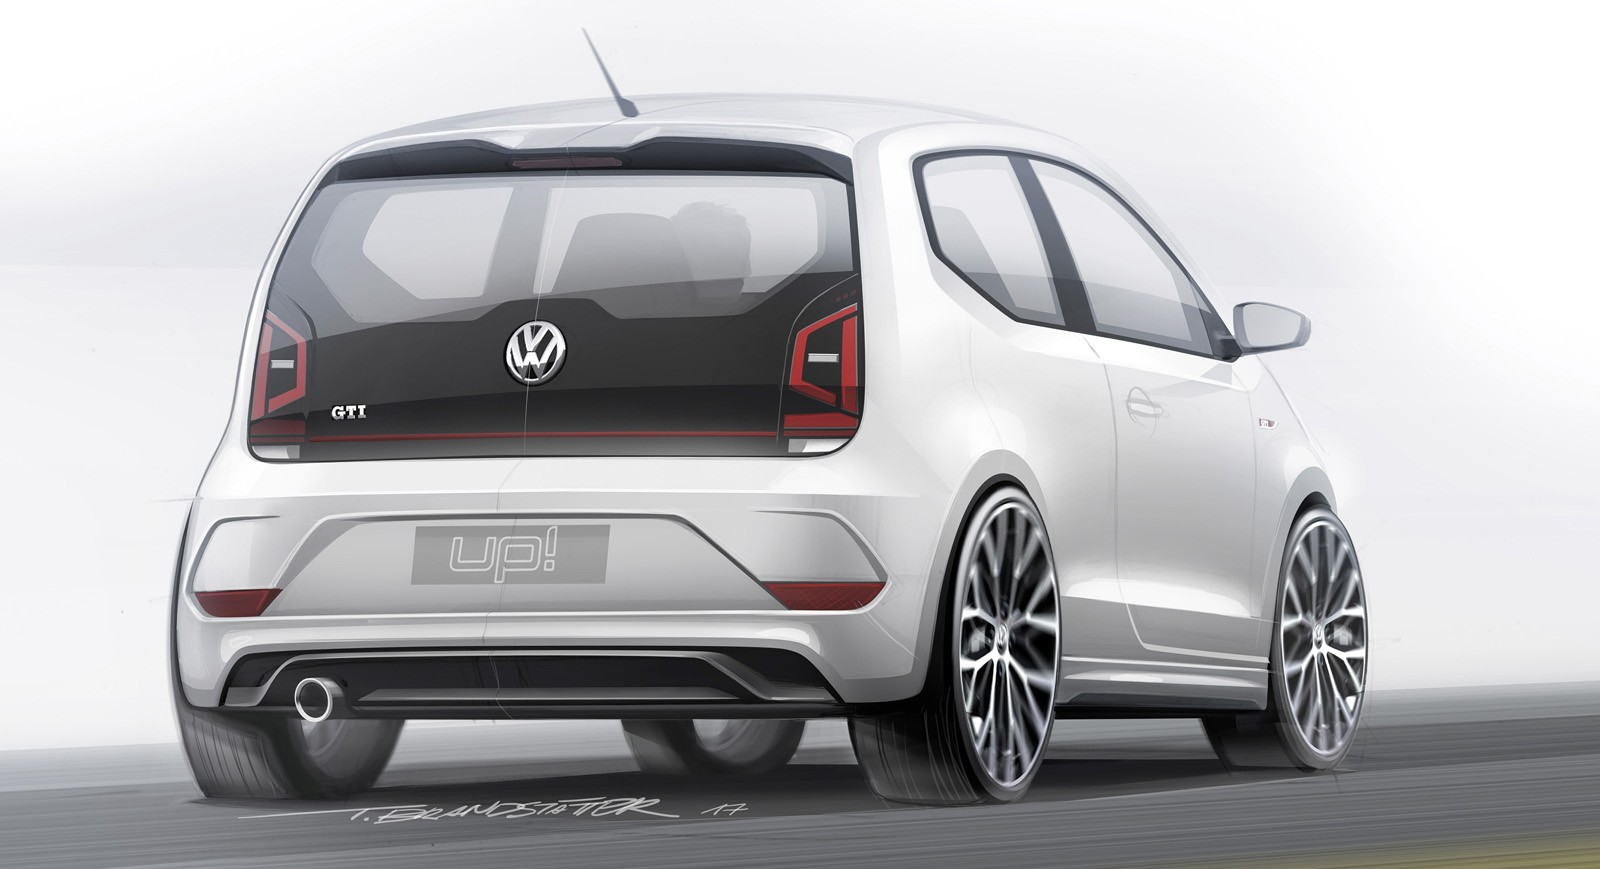 volkswagen up gti gets on track comparison with the original golf gti autoevolution. Black Bedroom Furniture Sets. Home Design Ideas